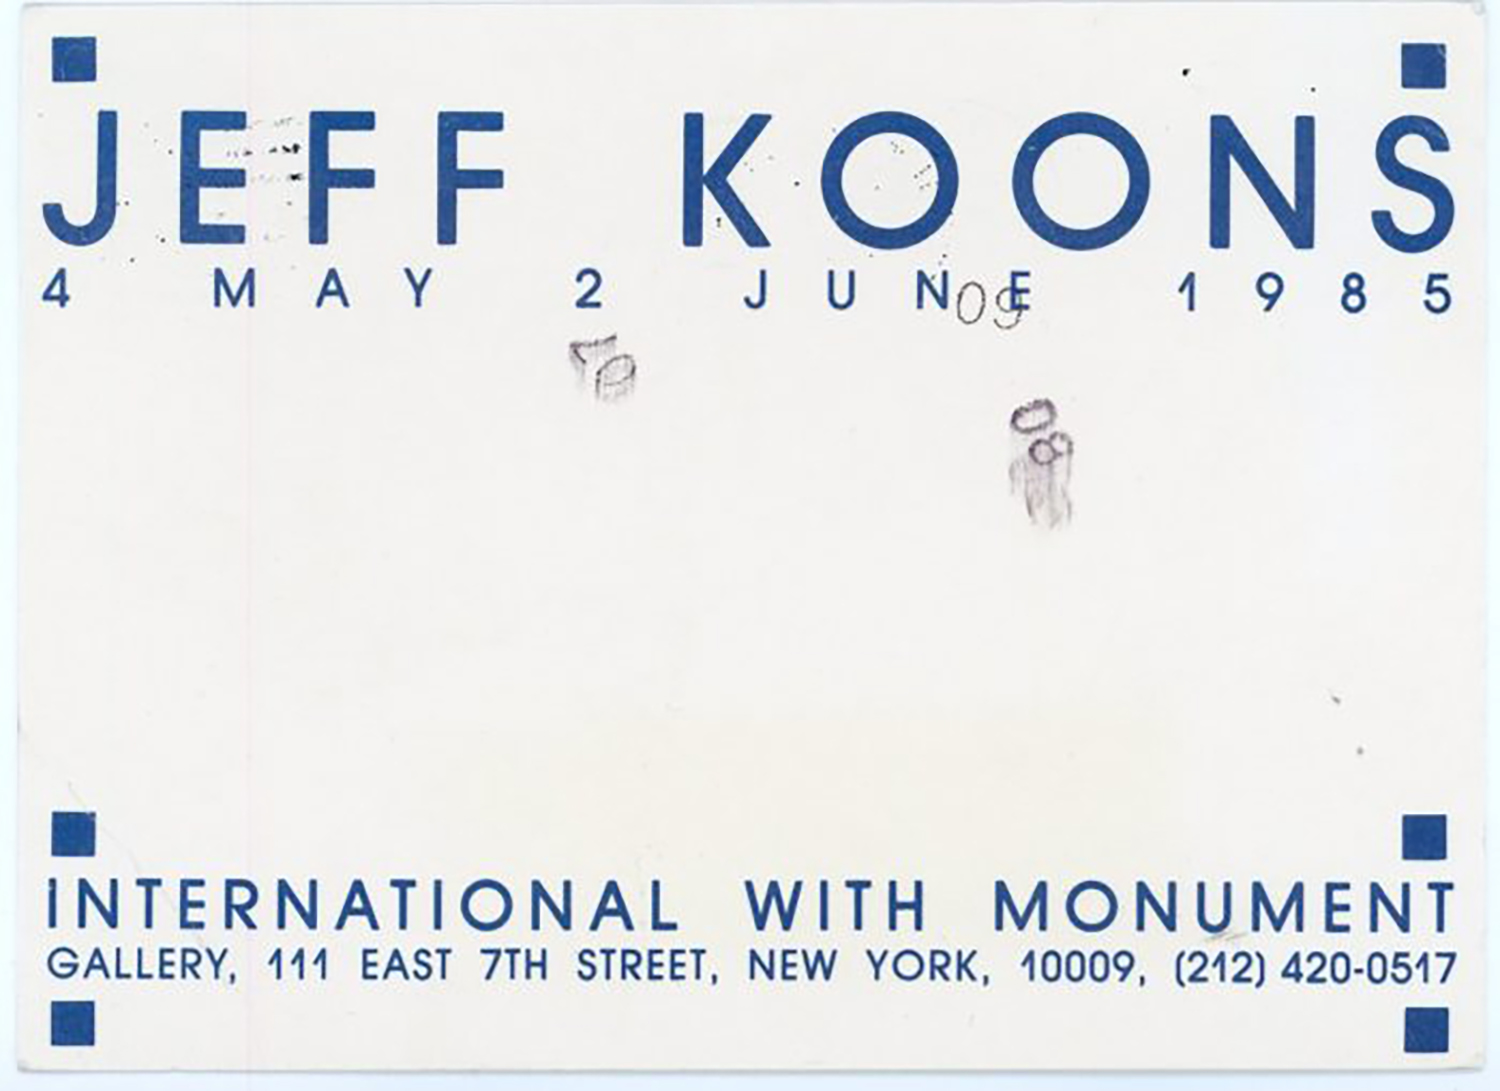 International With Monument, Jeff Koons, Card, 1985